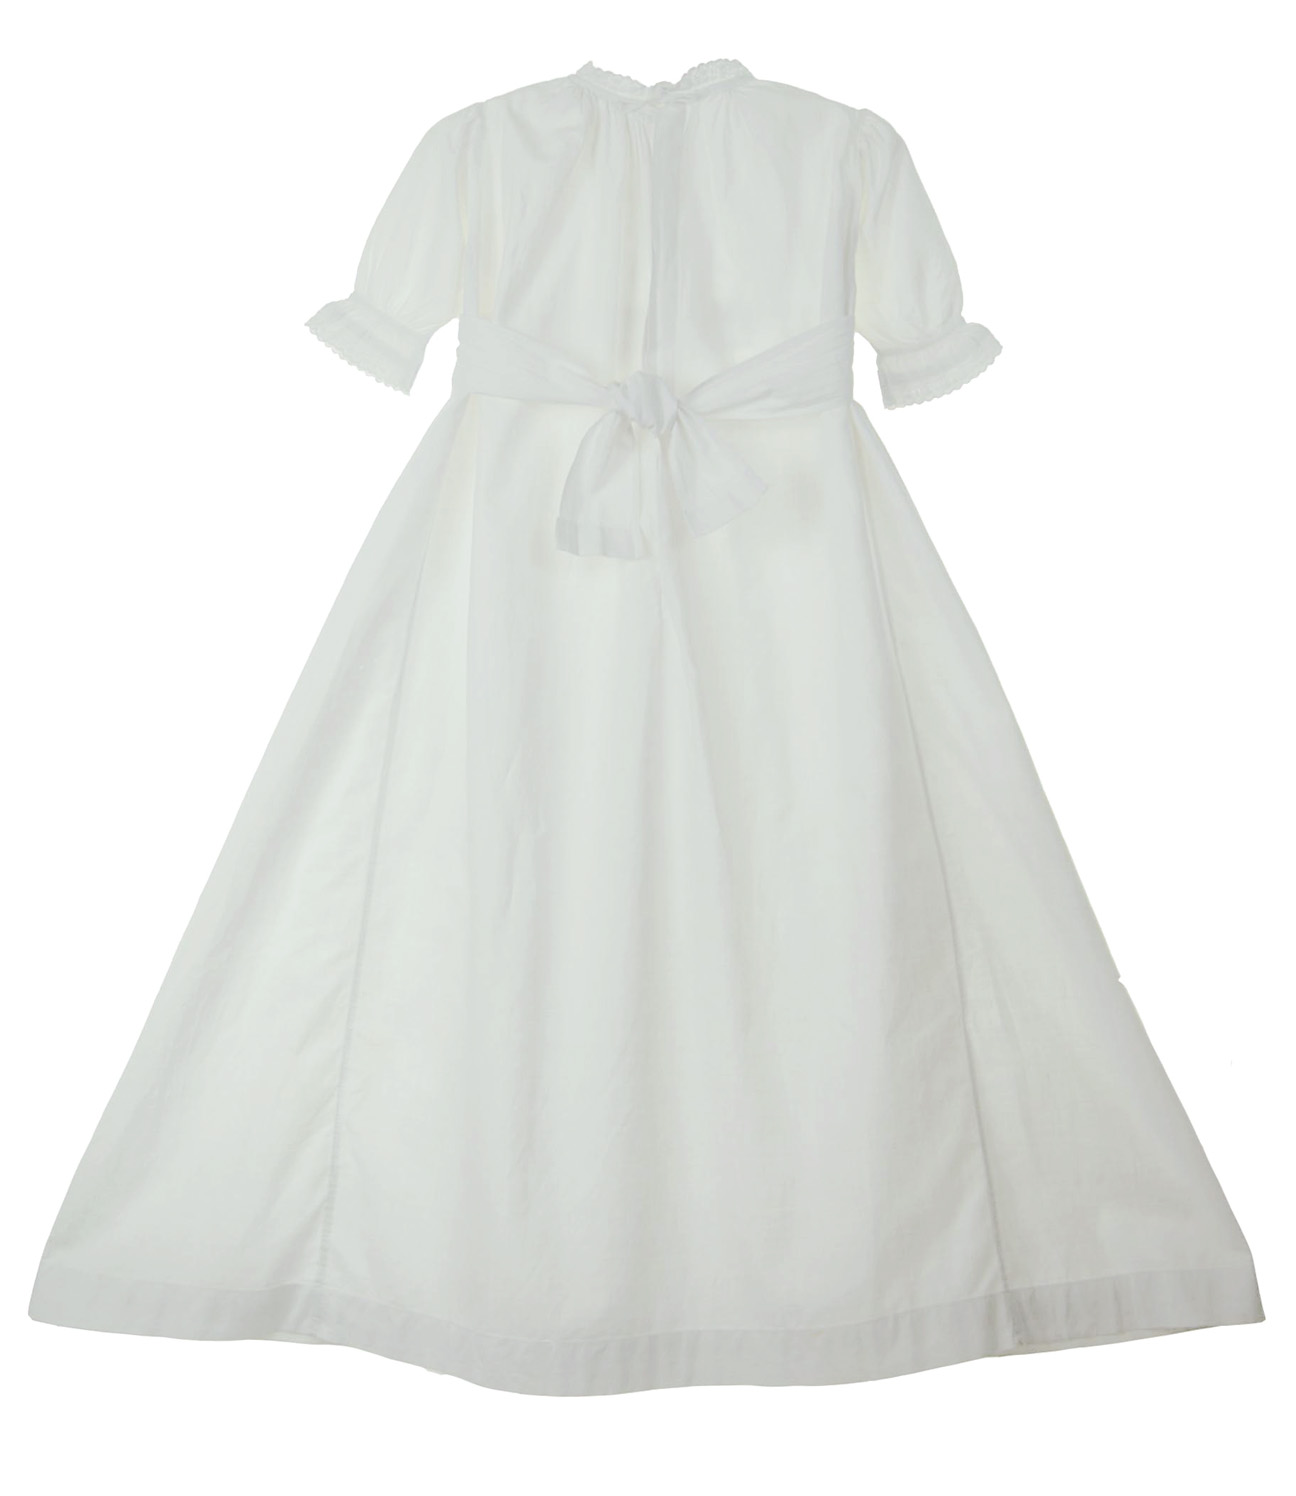 Heirloom Victorian Christening Gown With Whitework Embroidery